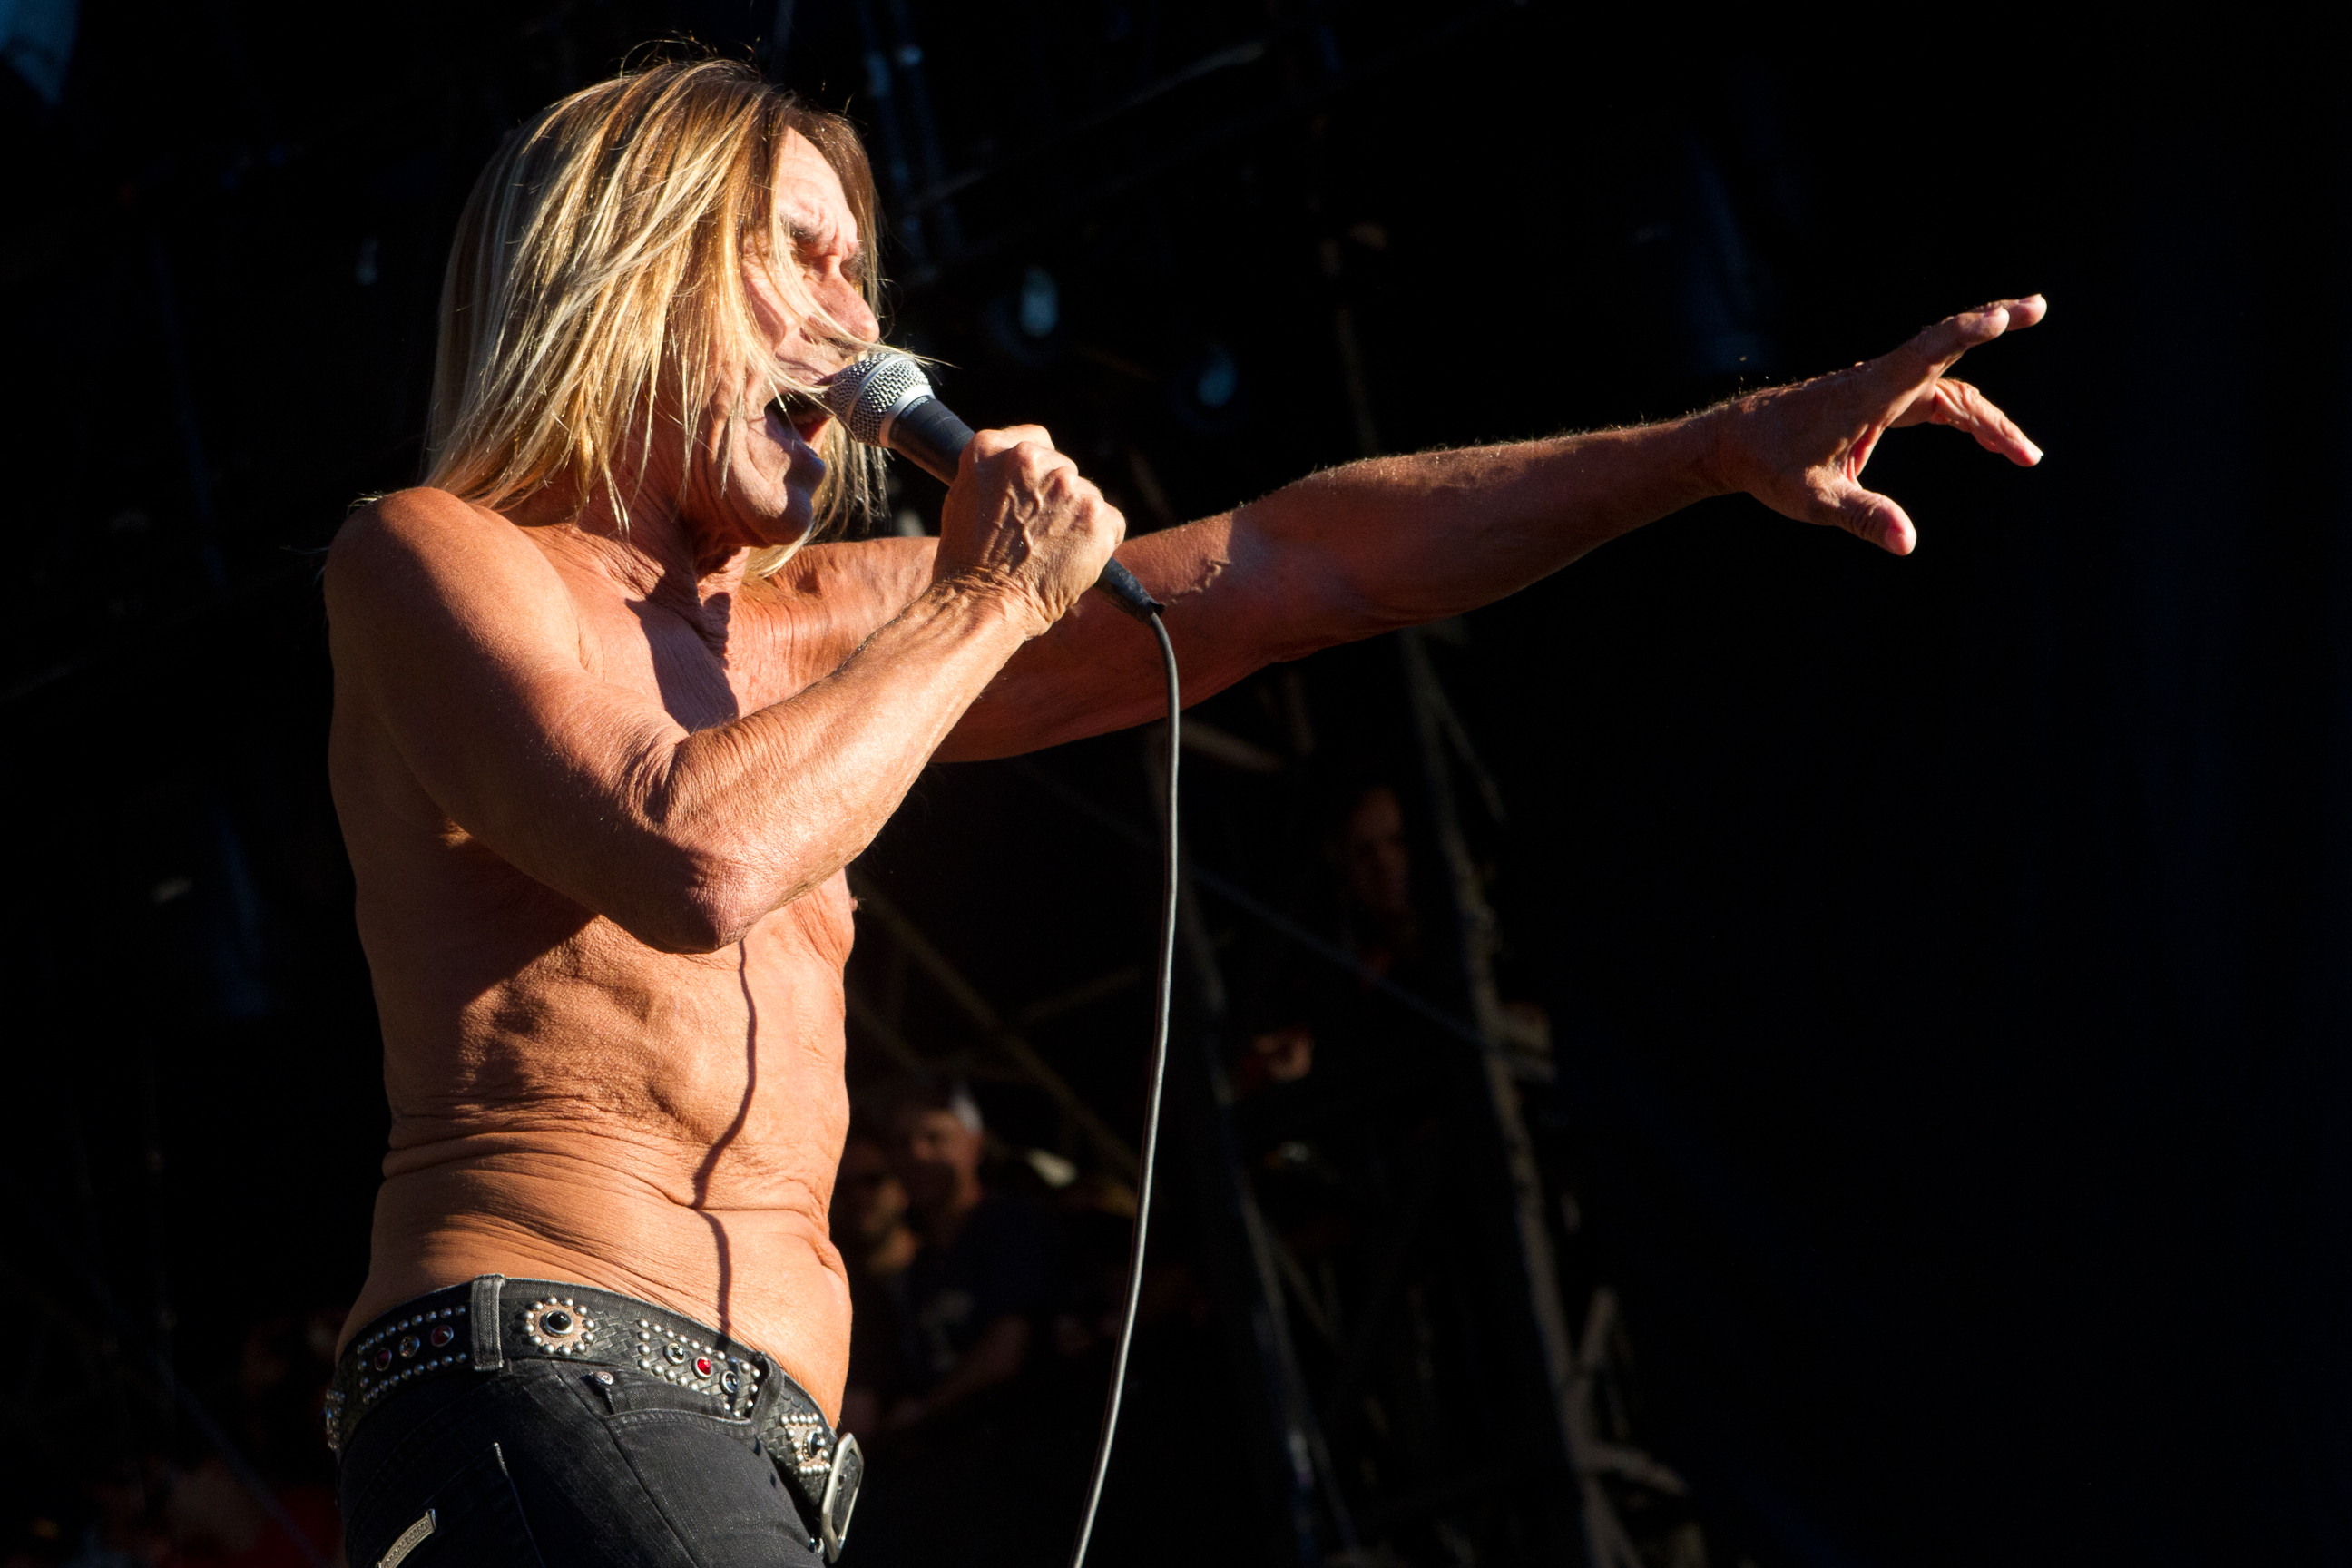 Iggy & The Stooges, due date in Italia a luglio